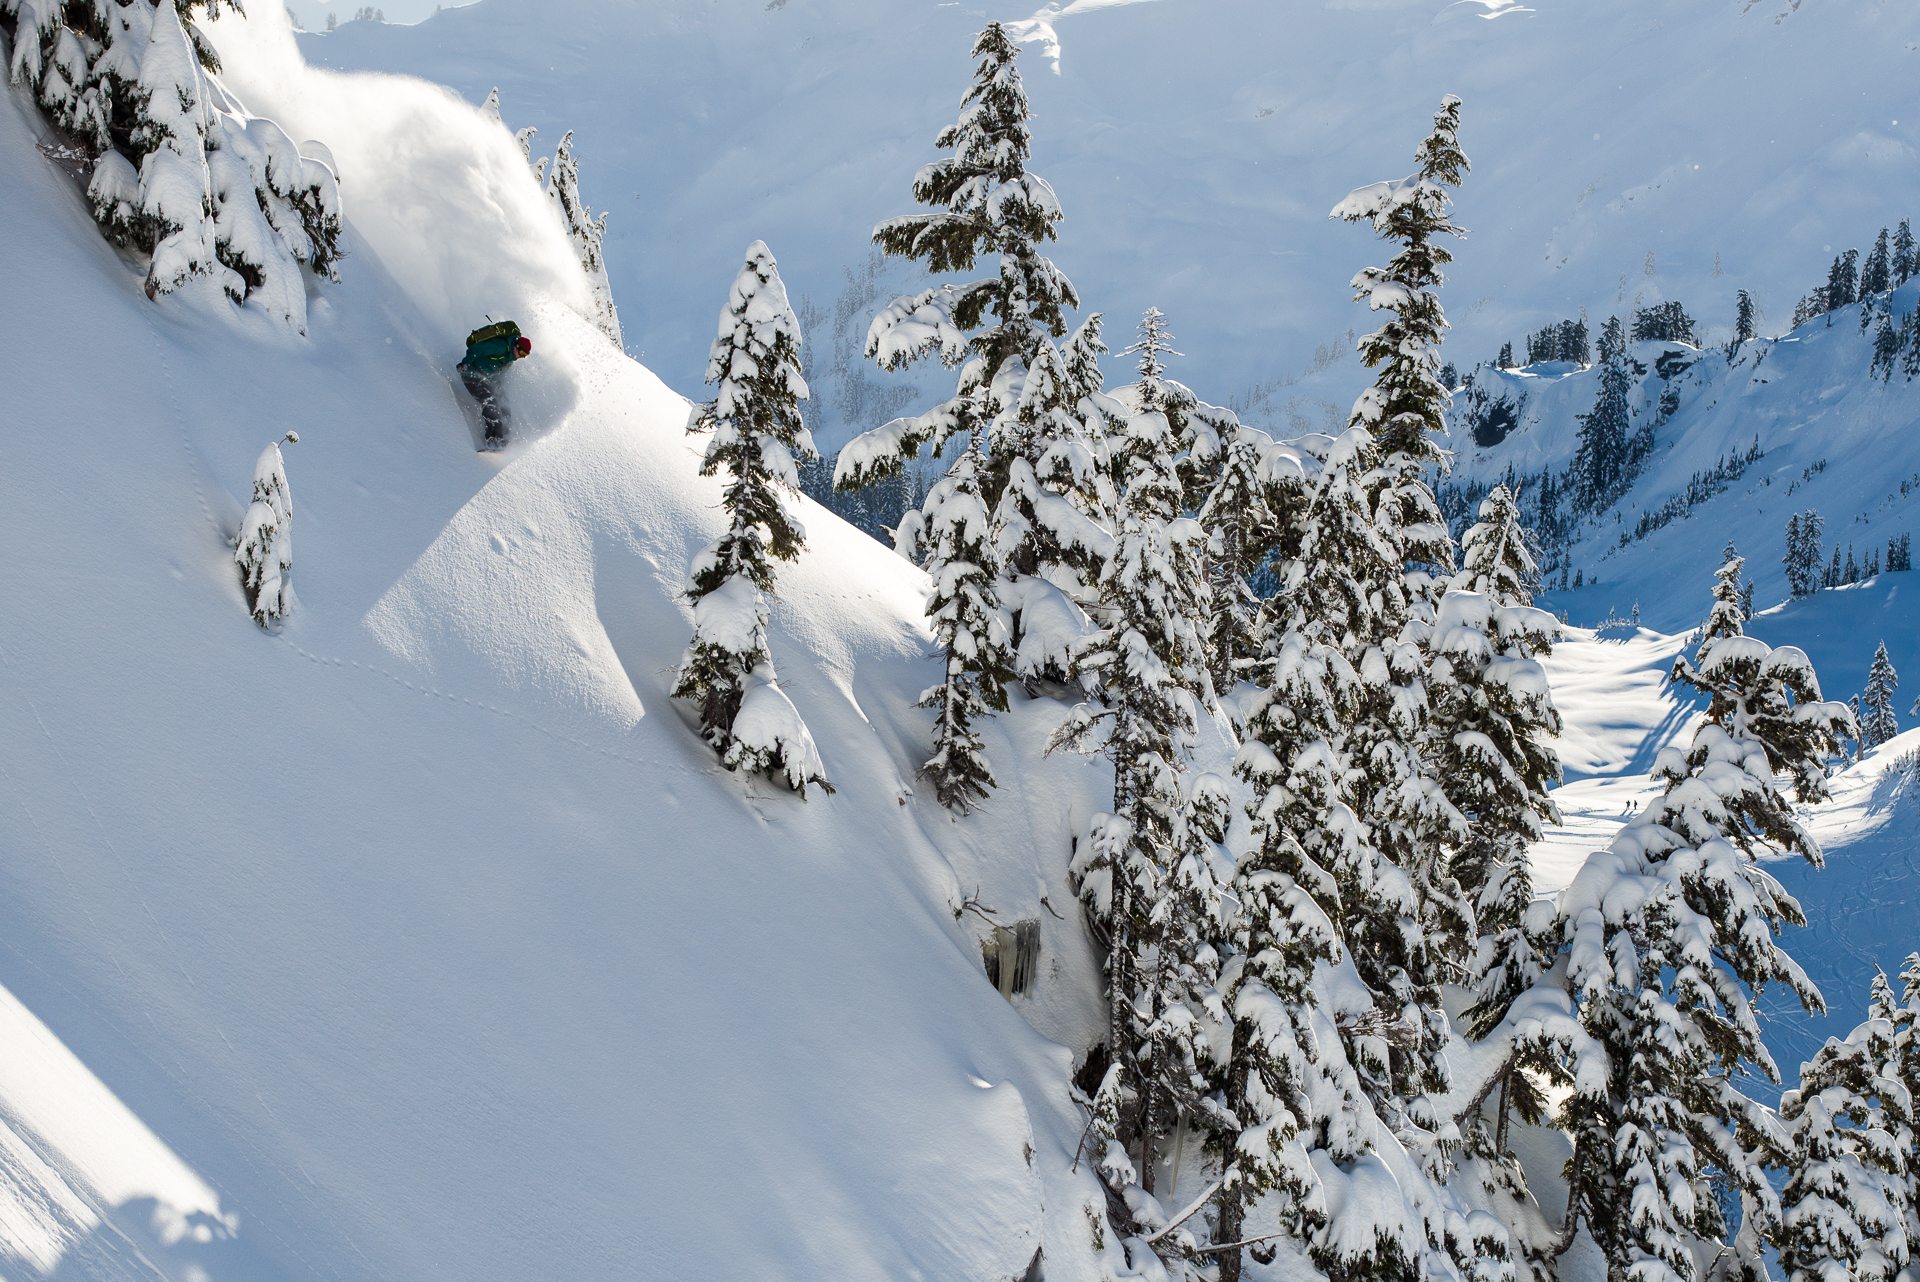 Kael Martin, Mt. Baker backcountry, WA. Photo: Colin Wiseman.